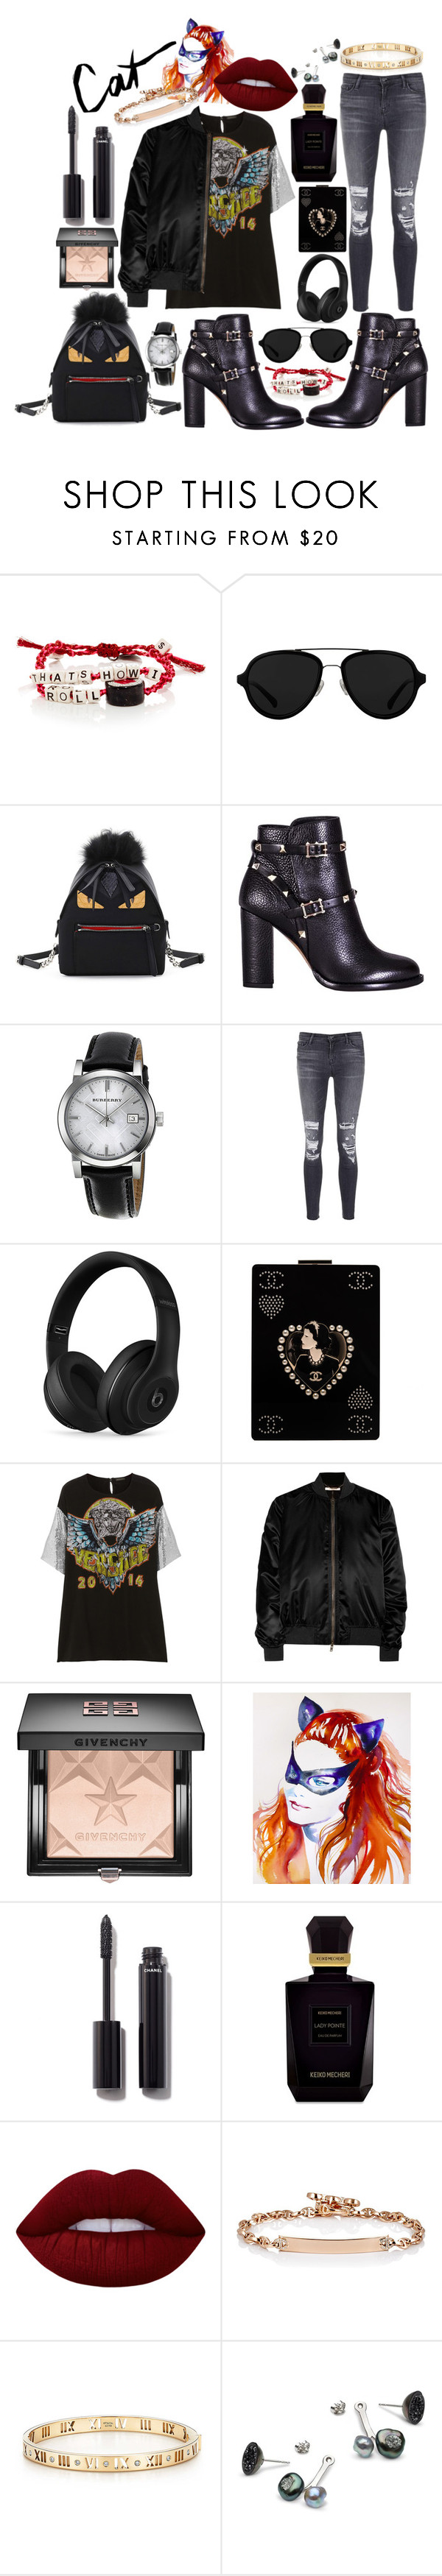 """""""Cat"""" by kat-von-g ❤ liked on Polyvore featuring Venessa Arizaga, 3.1 Phillip Lim, Fendi, Valentino, Burberry, J Brand, Beats by Dr. Dre, Chanel, Versace and Givenchy"""